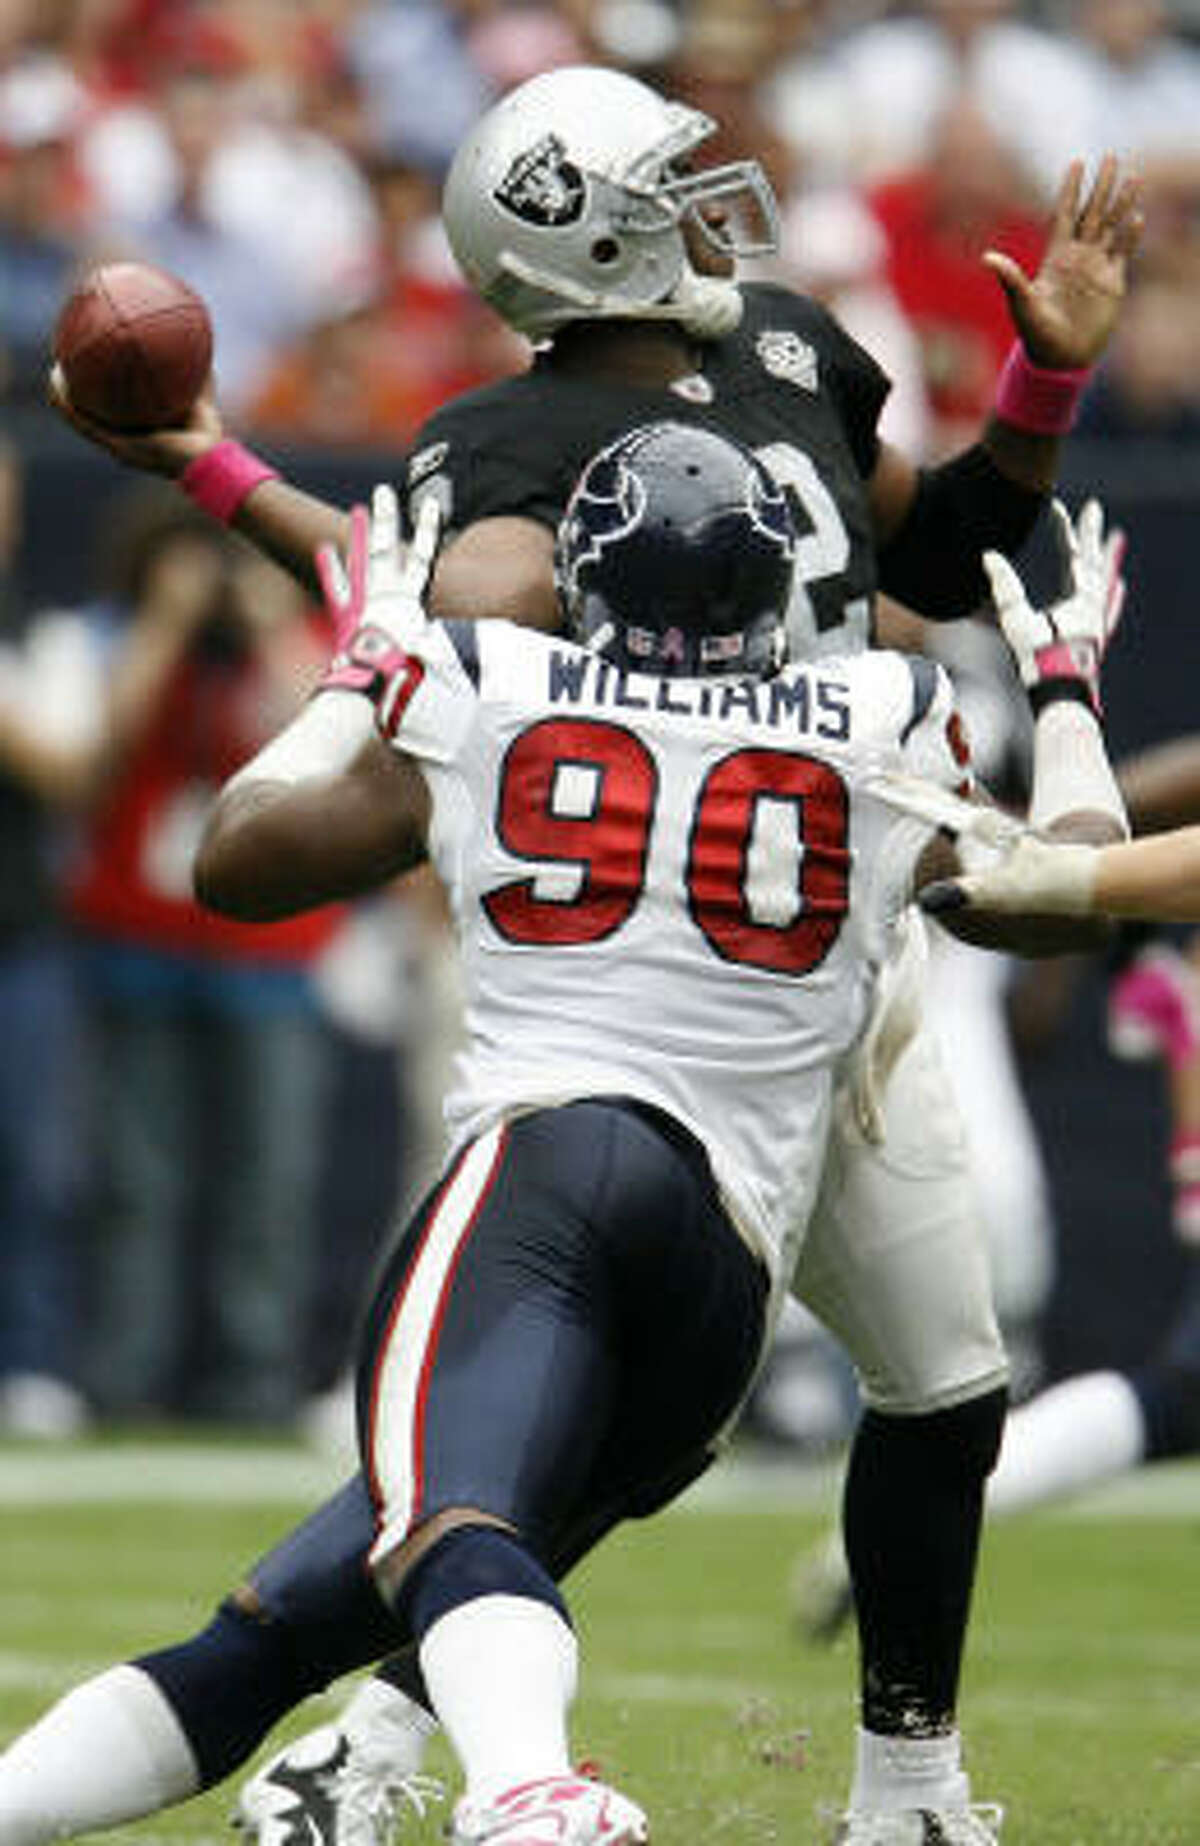 Texans defensive end Mario Williams says it's time for the team to get over